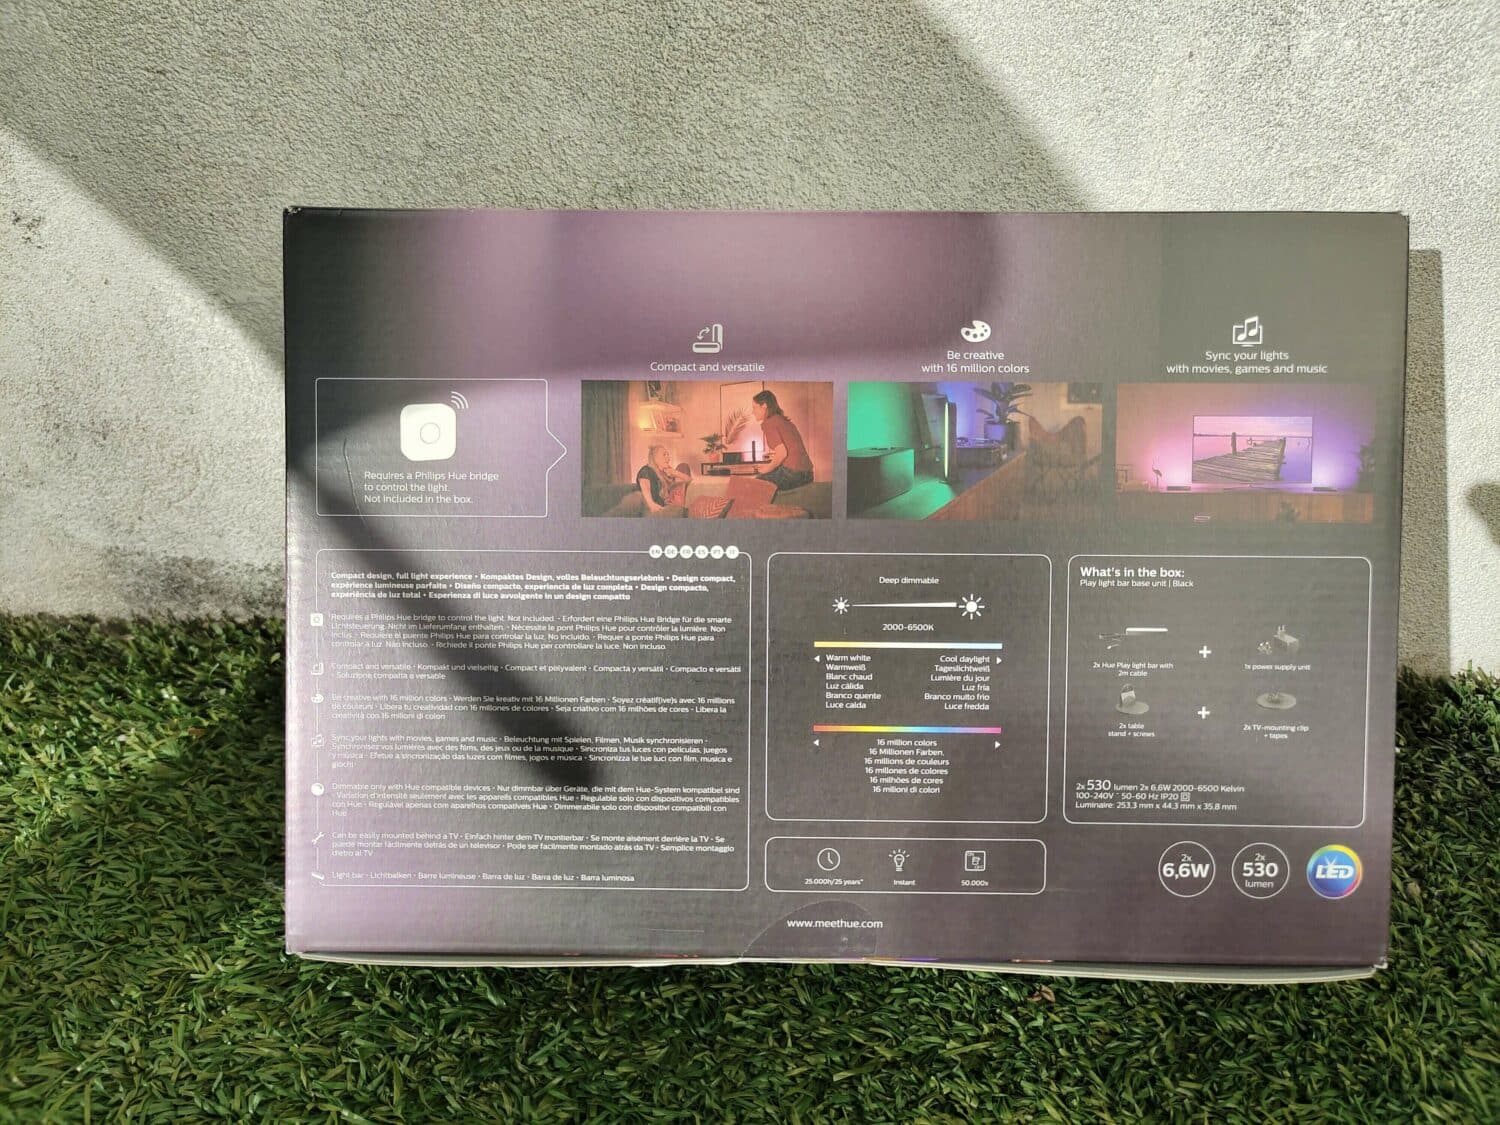 Philips Play Bar - Unboxing